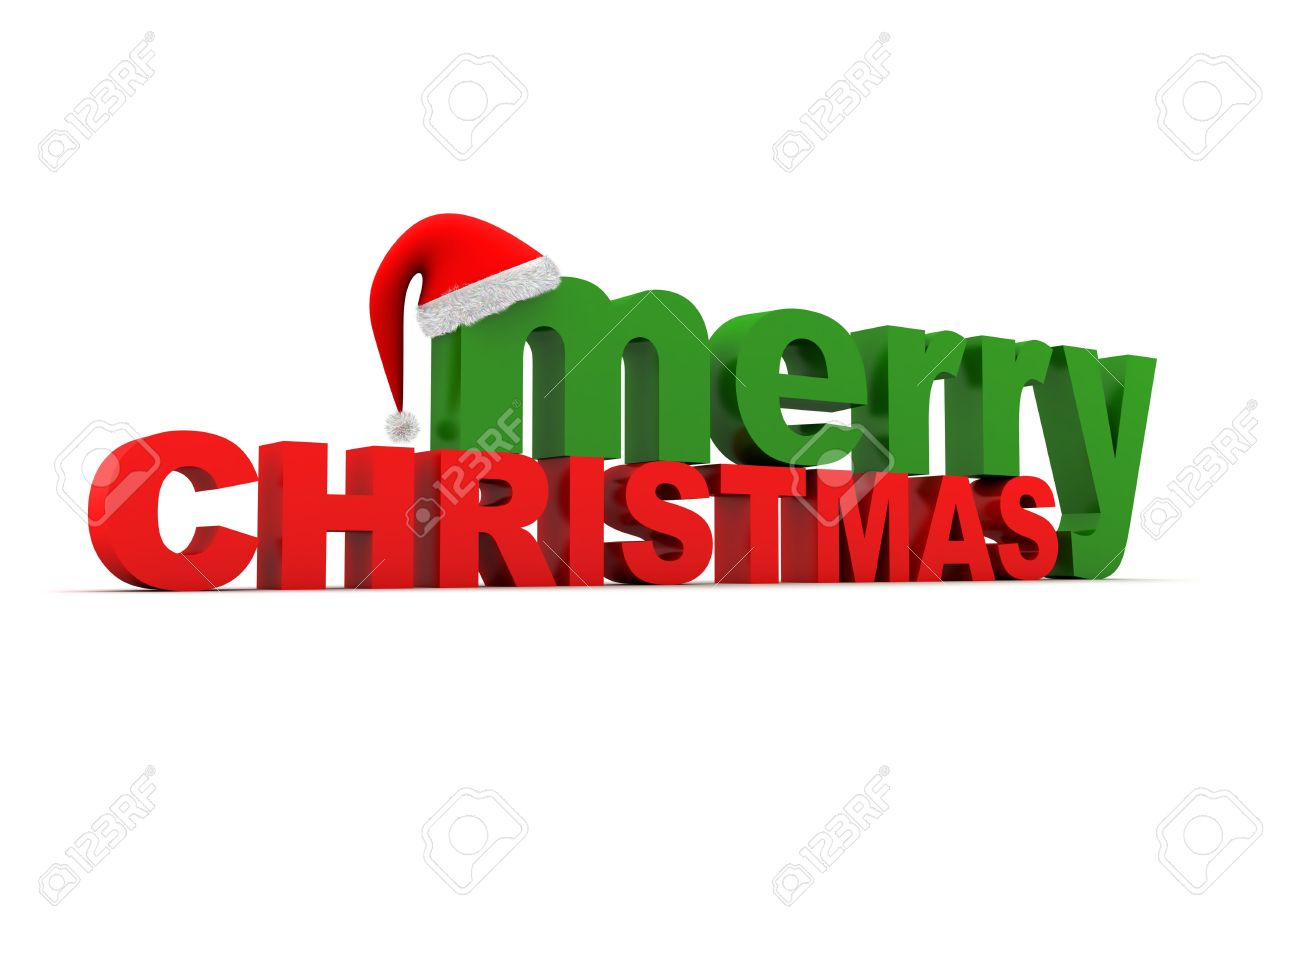 The Words Merry Christmas And A Christmas Hat. XXL Stock Photo ...